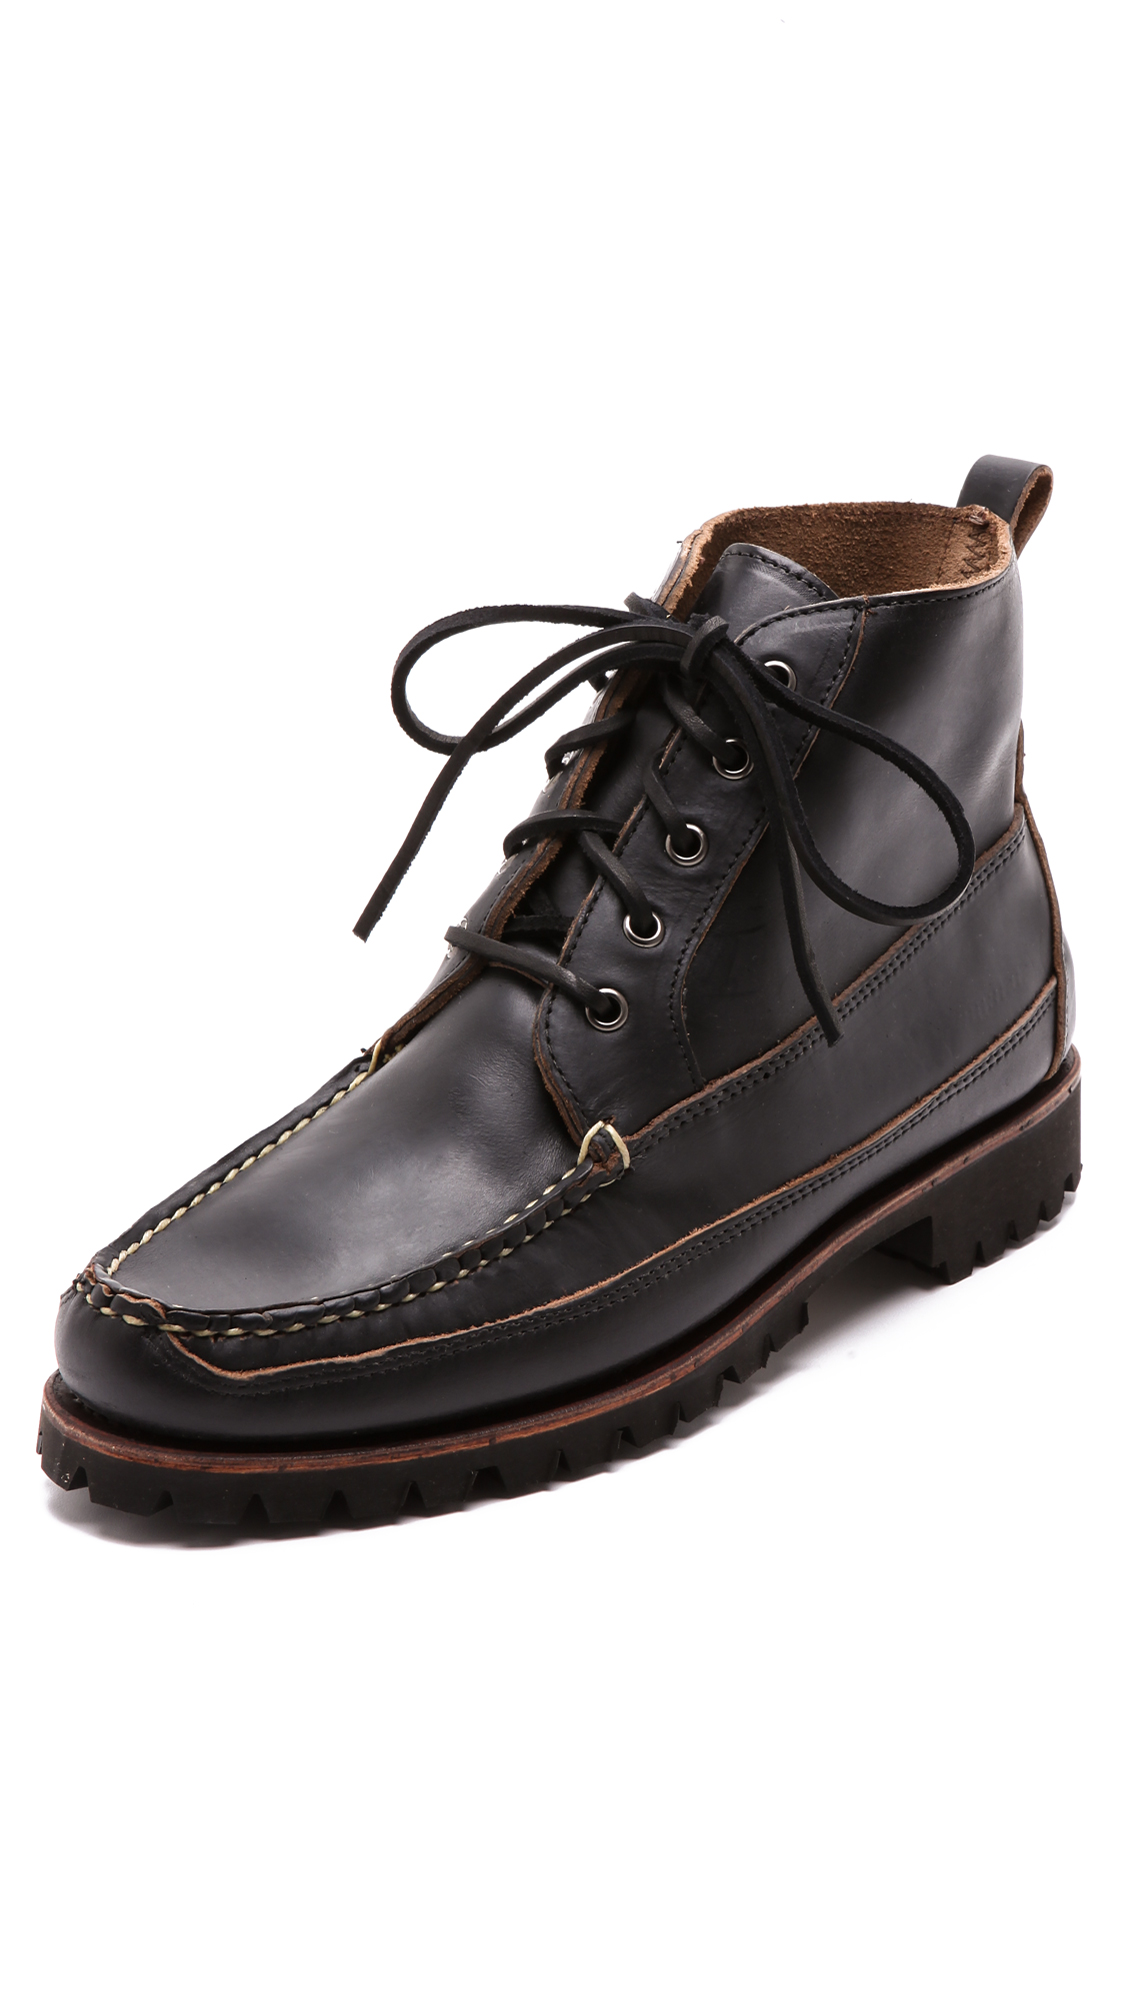 Eastland Kennebunk Usa Boots In Black For Men Lyst